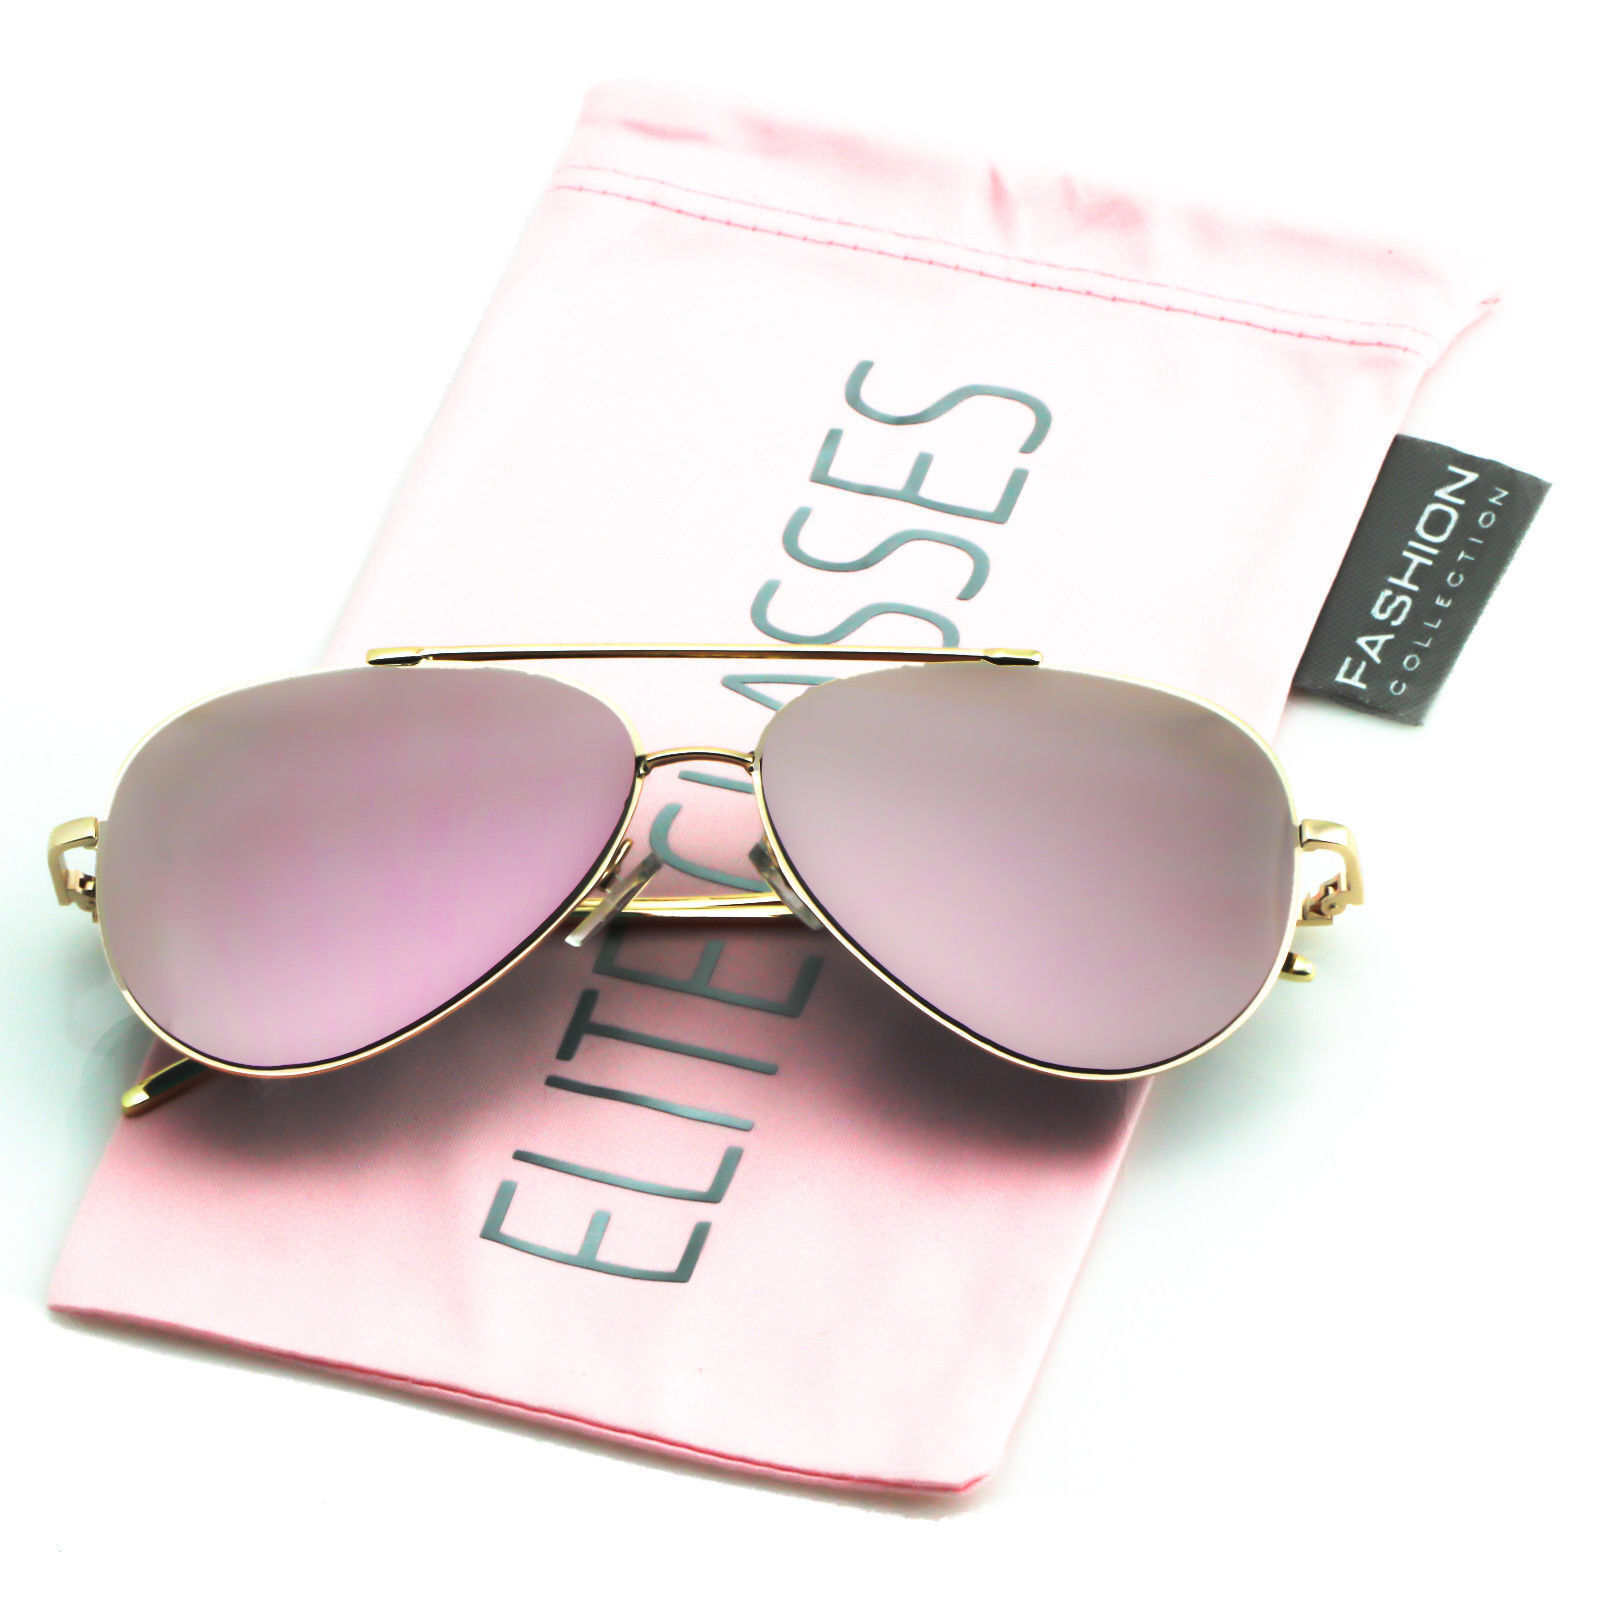 Gold/Pink Mirror Lens Aviator Sunglasses Limited  Edition